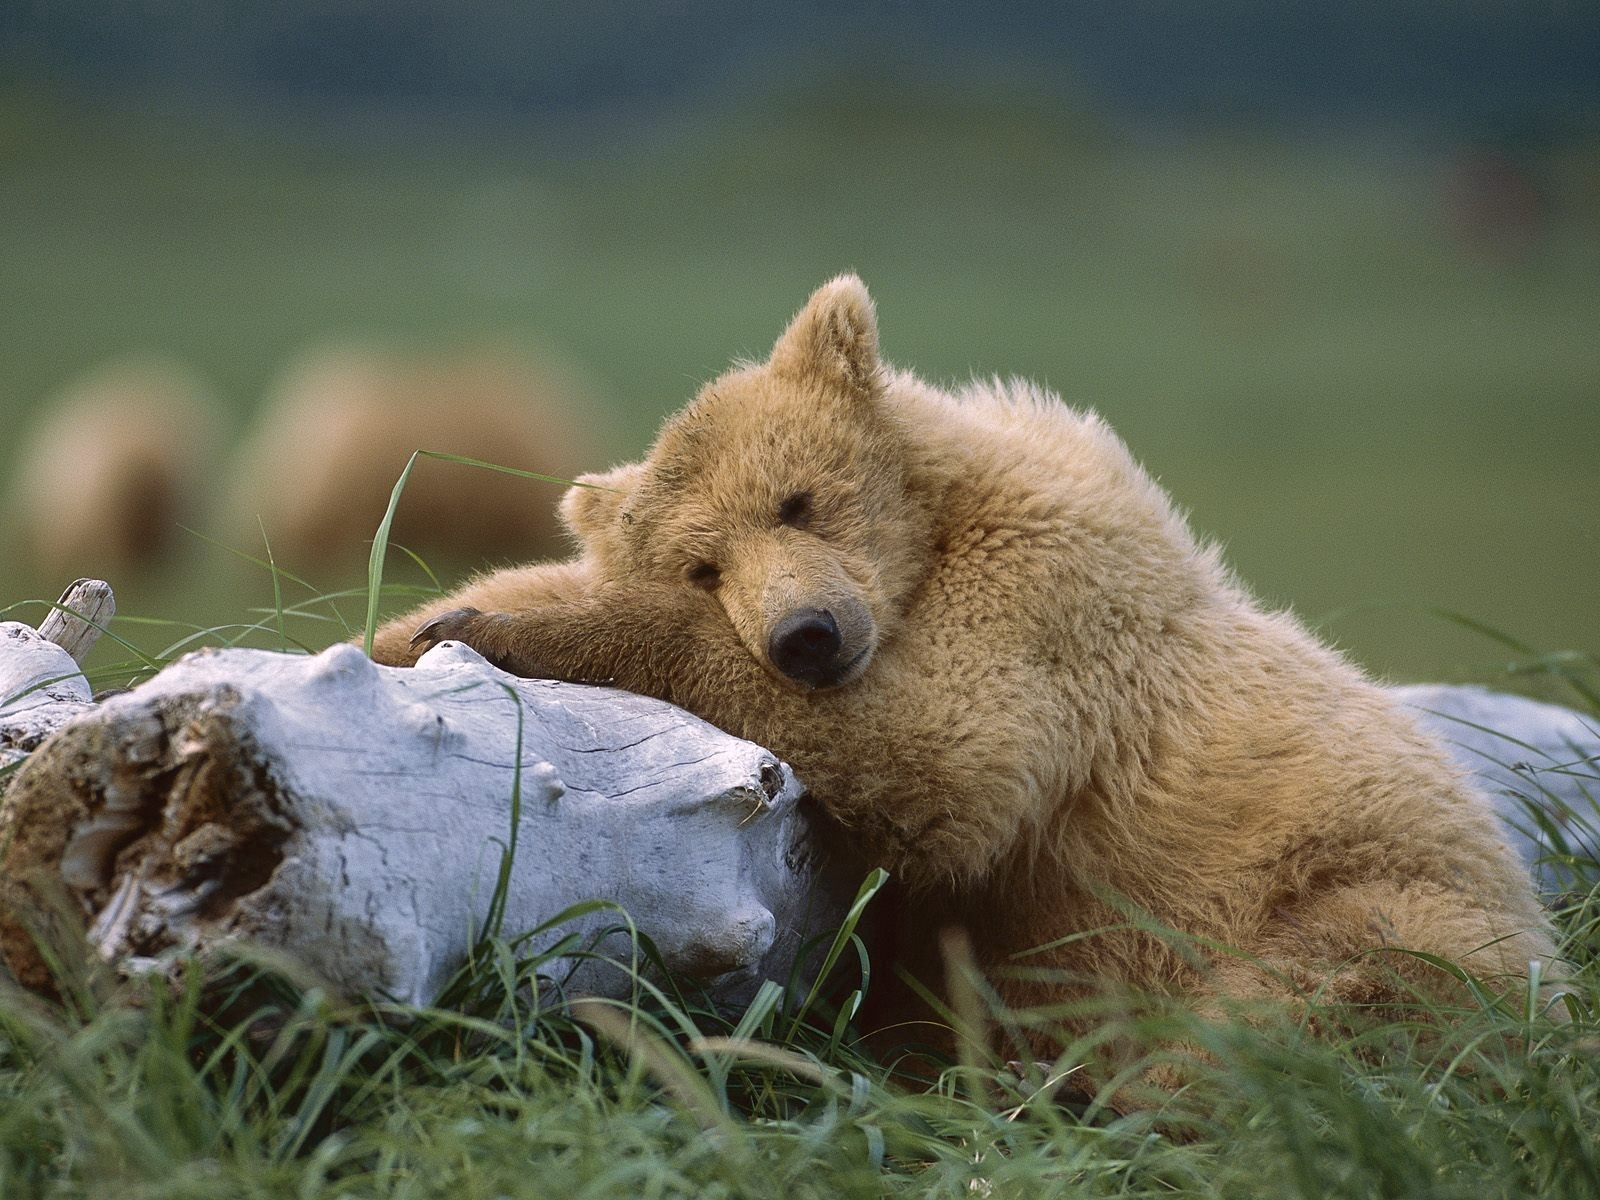 121964 download wallpaper Animals, Bear, Young, Joey, Log, To Lie Down, Lie screensavers and pictures for free